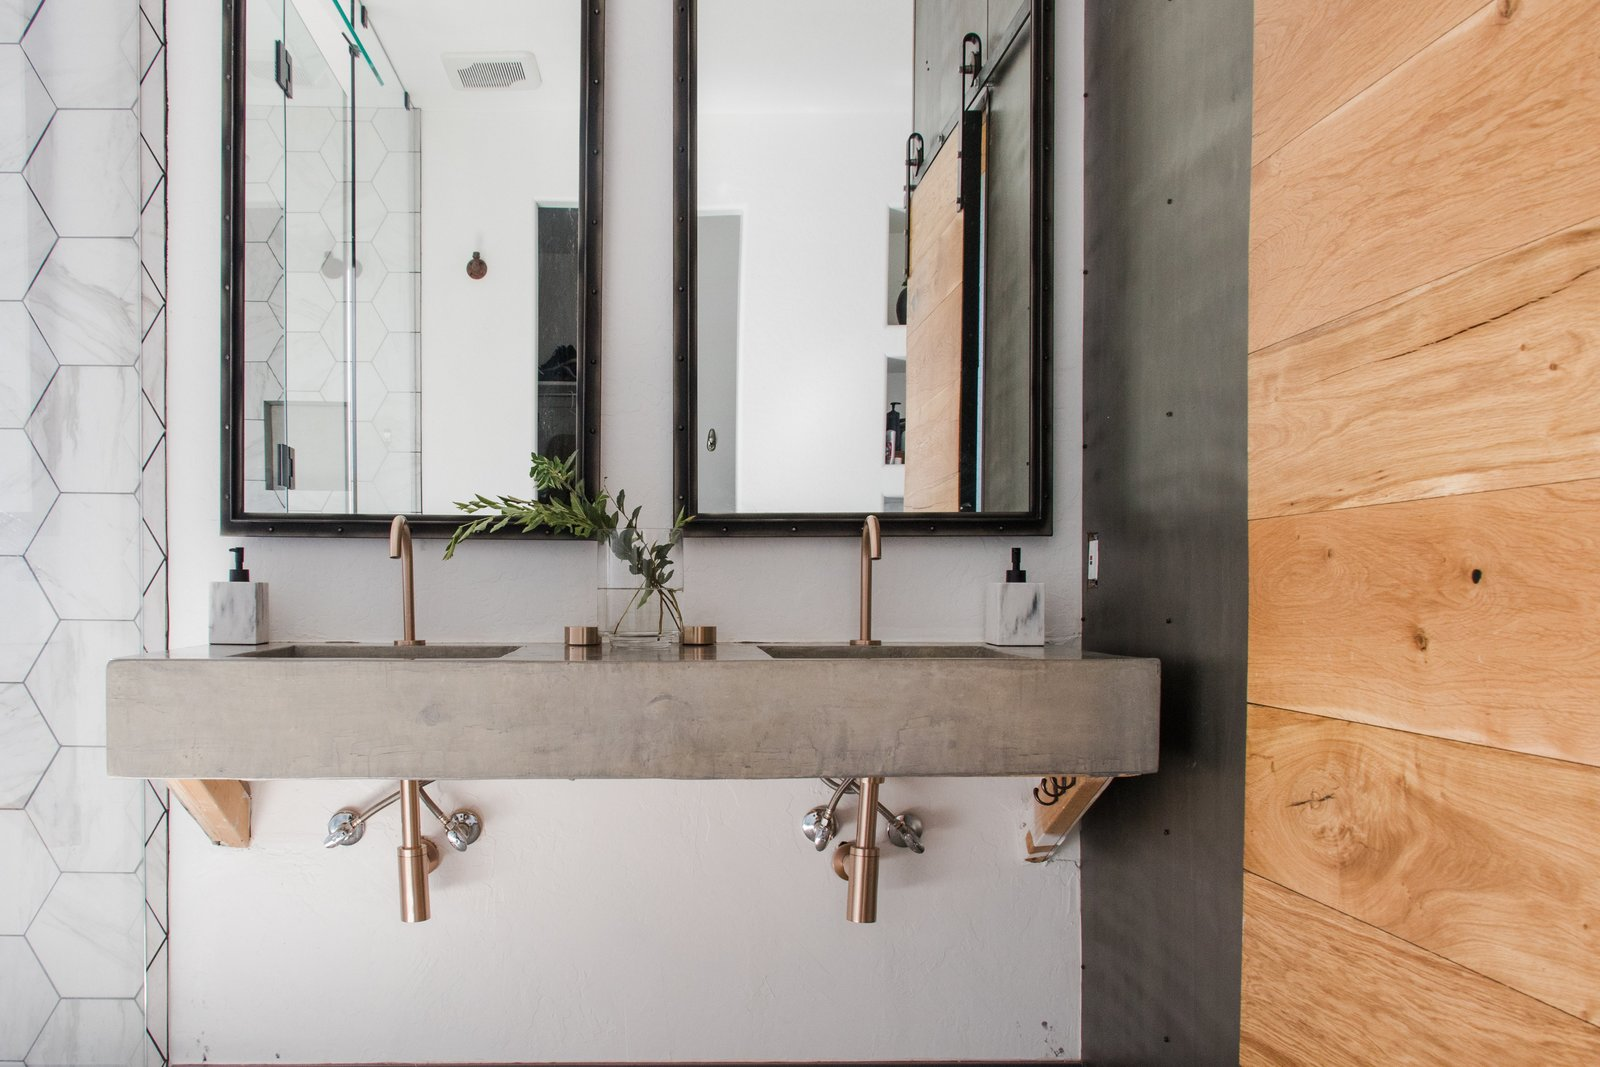 An wheelchair-accessible sink designed by Maegan Blau of Blue Copper Design.  Photo 6 of 9 in Just How Inclusive Is Accessible Design?